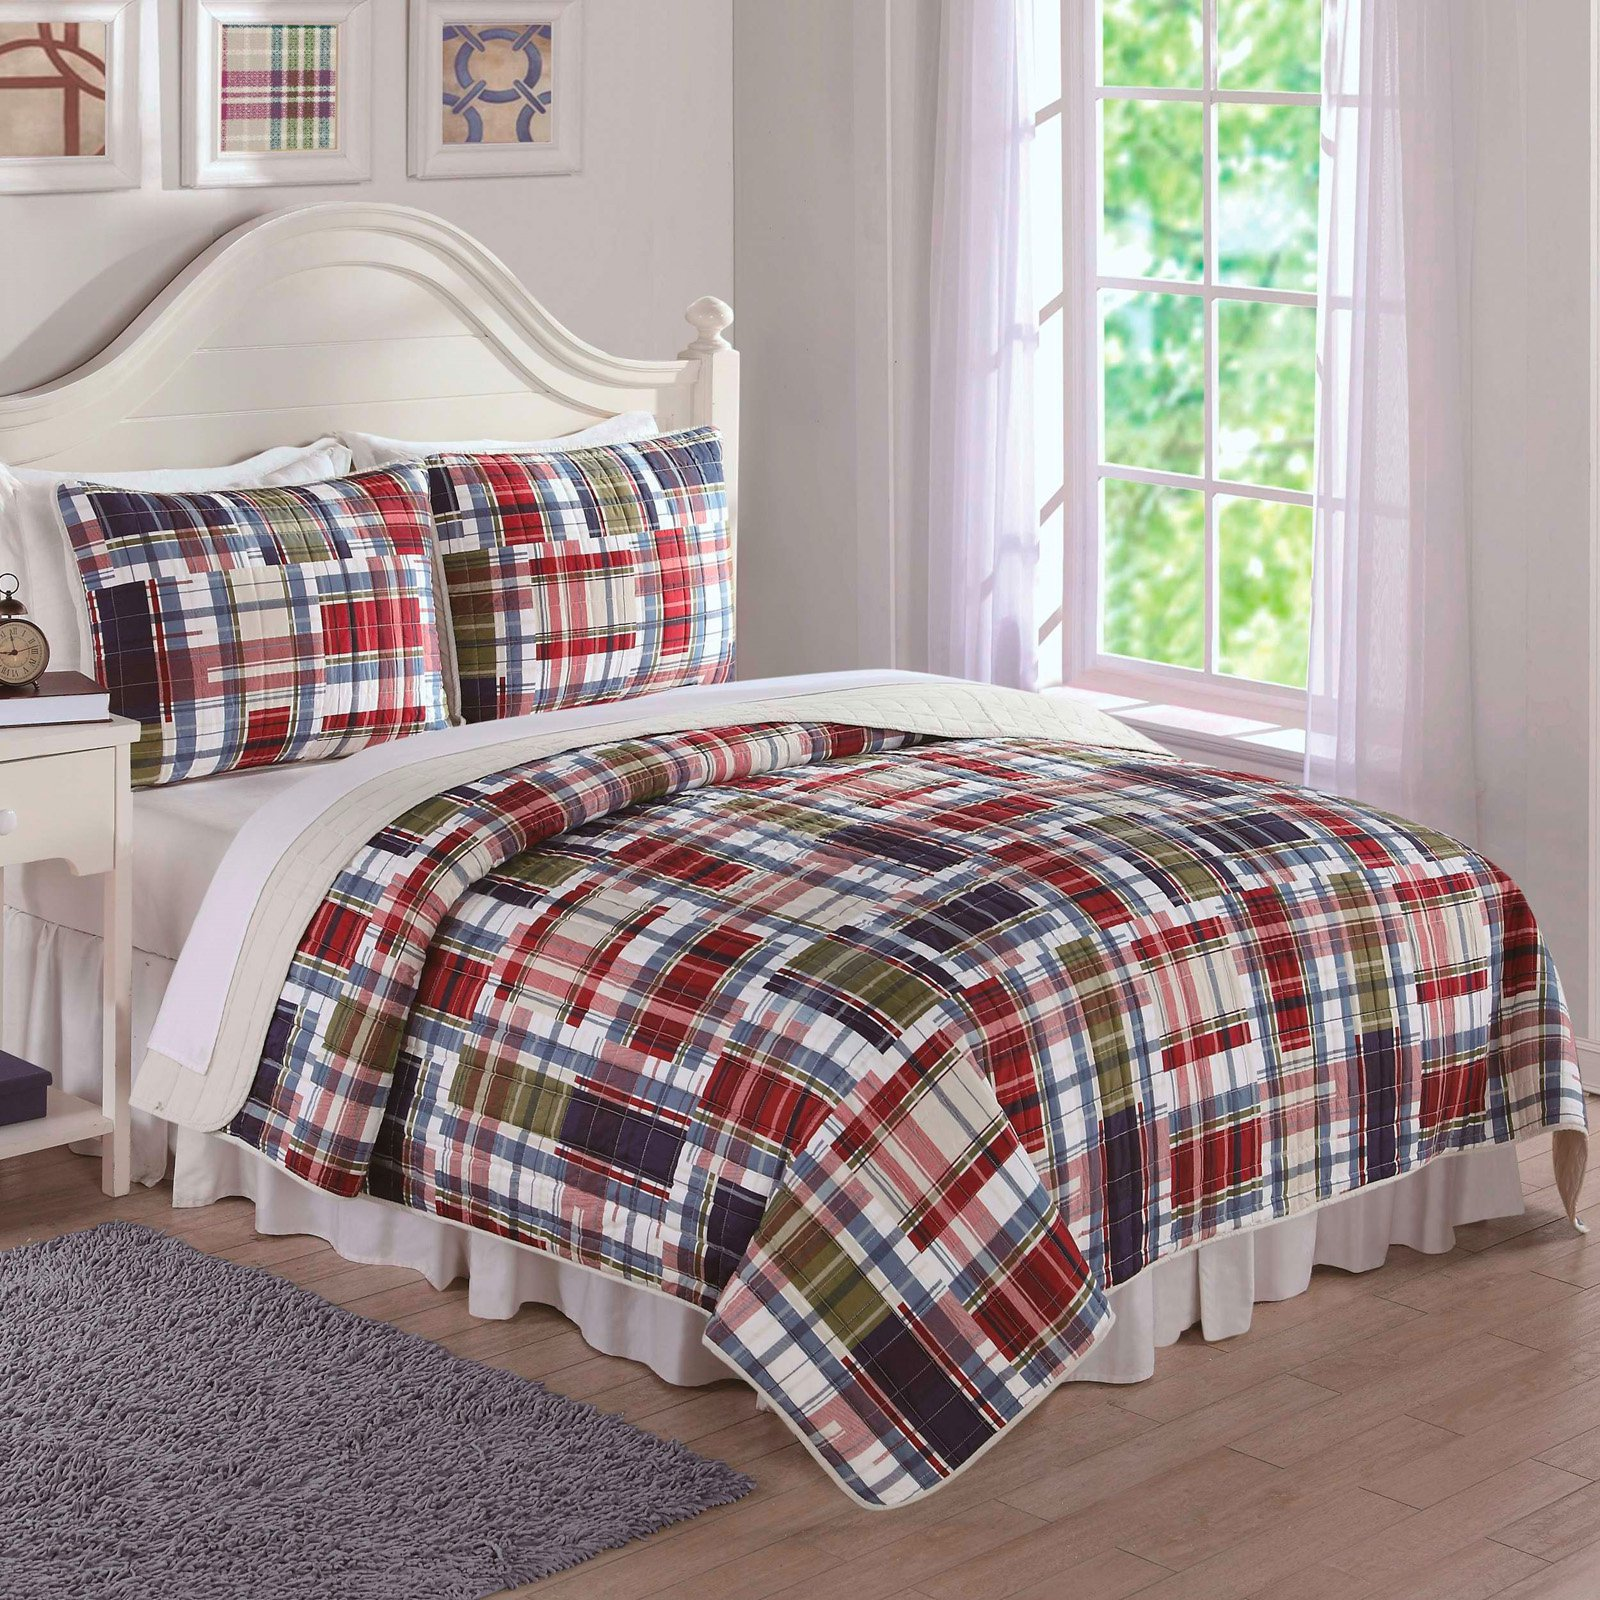 Navy Khaki Preppy Plaid Bedding Quilt Set by PEM AMERICA